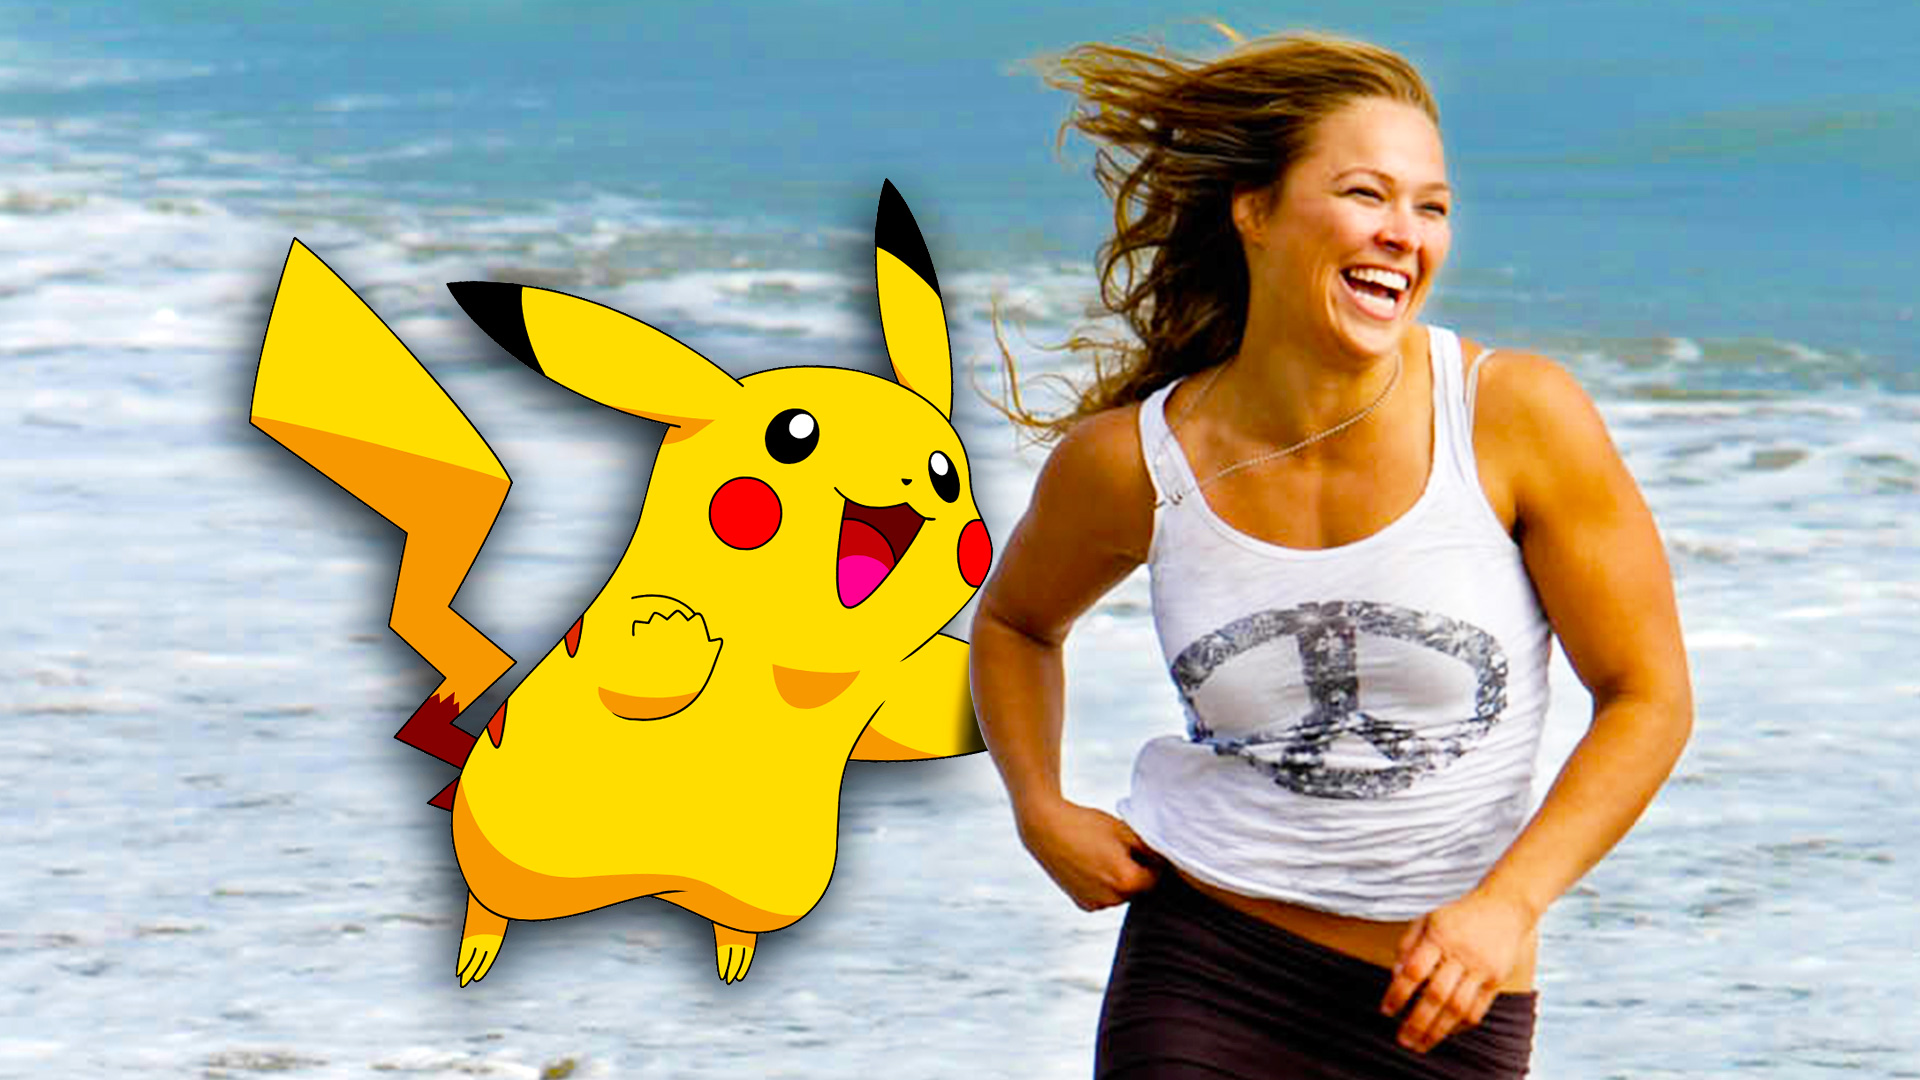 Ronda Rousey and Pikachu